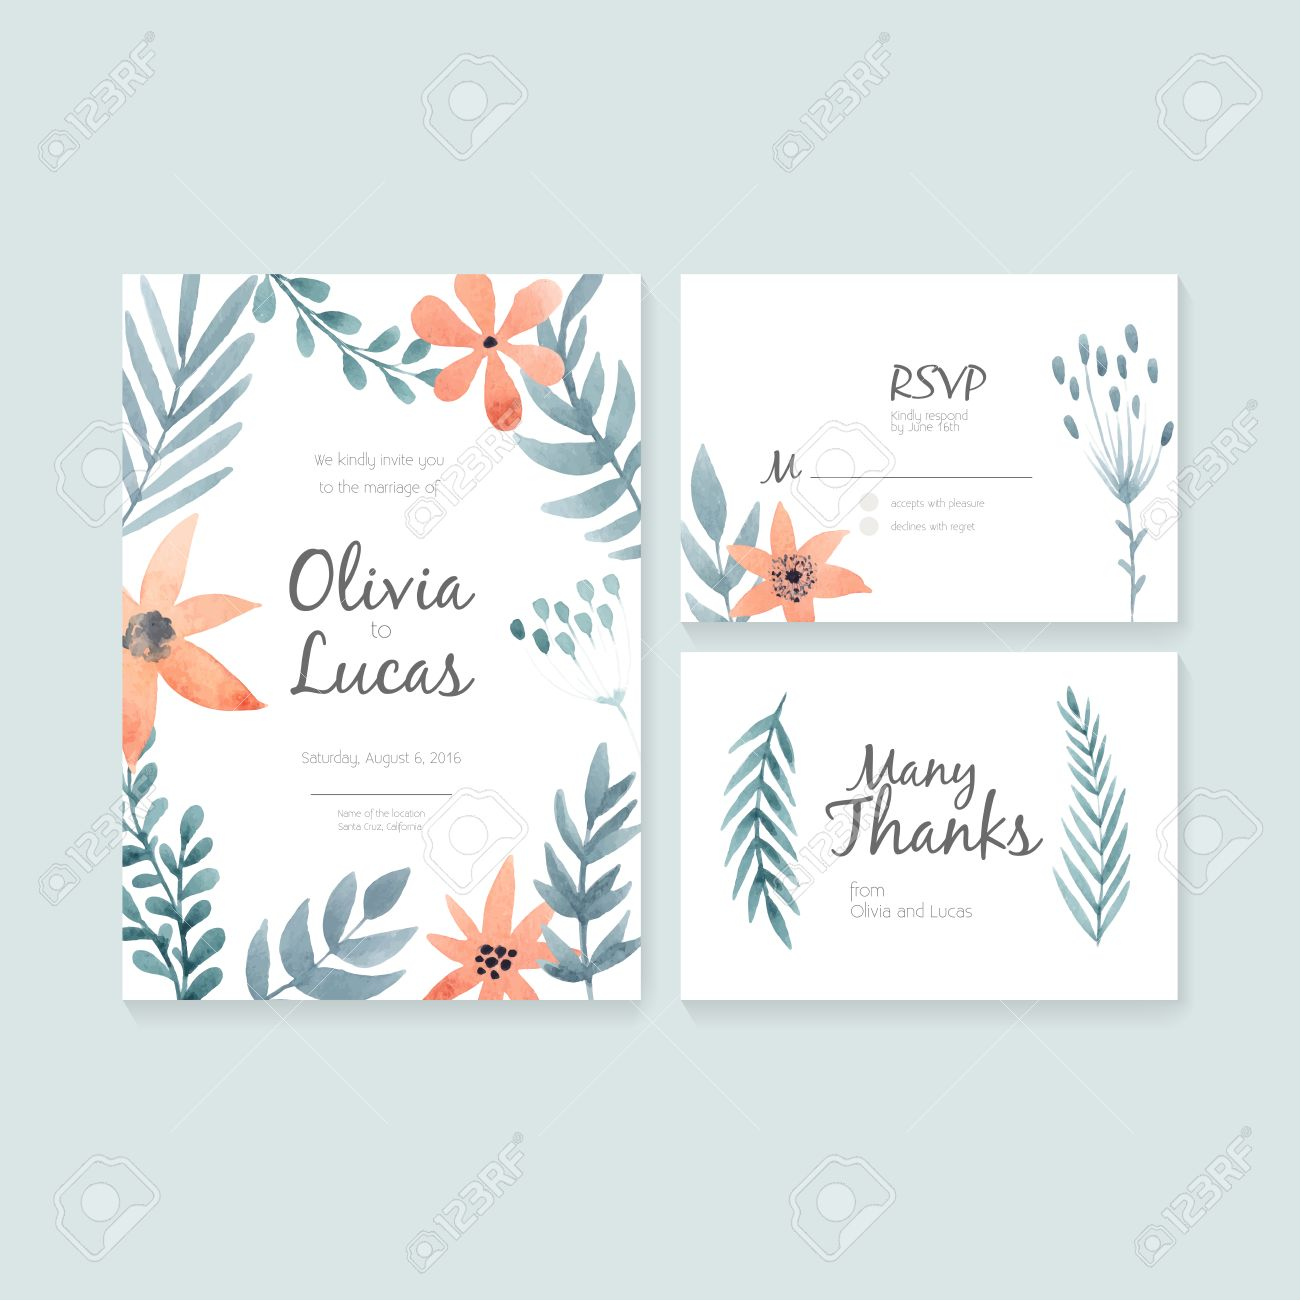 Unique Gentle Vector Wedding Cards Template With Watercolor – Wedding Save the Date Free Templates